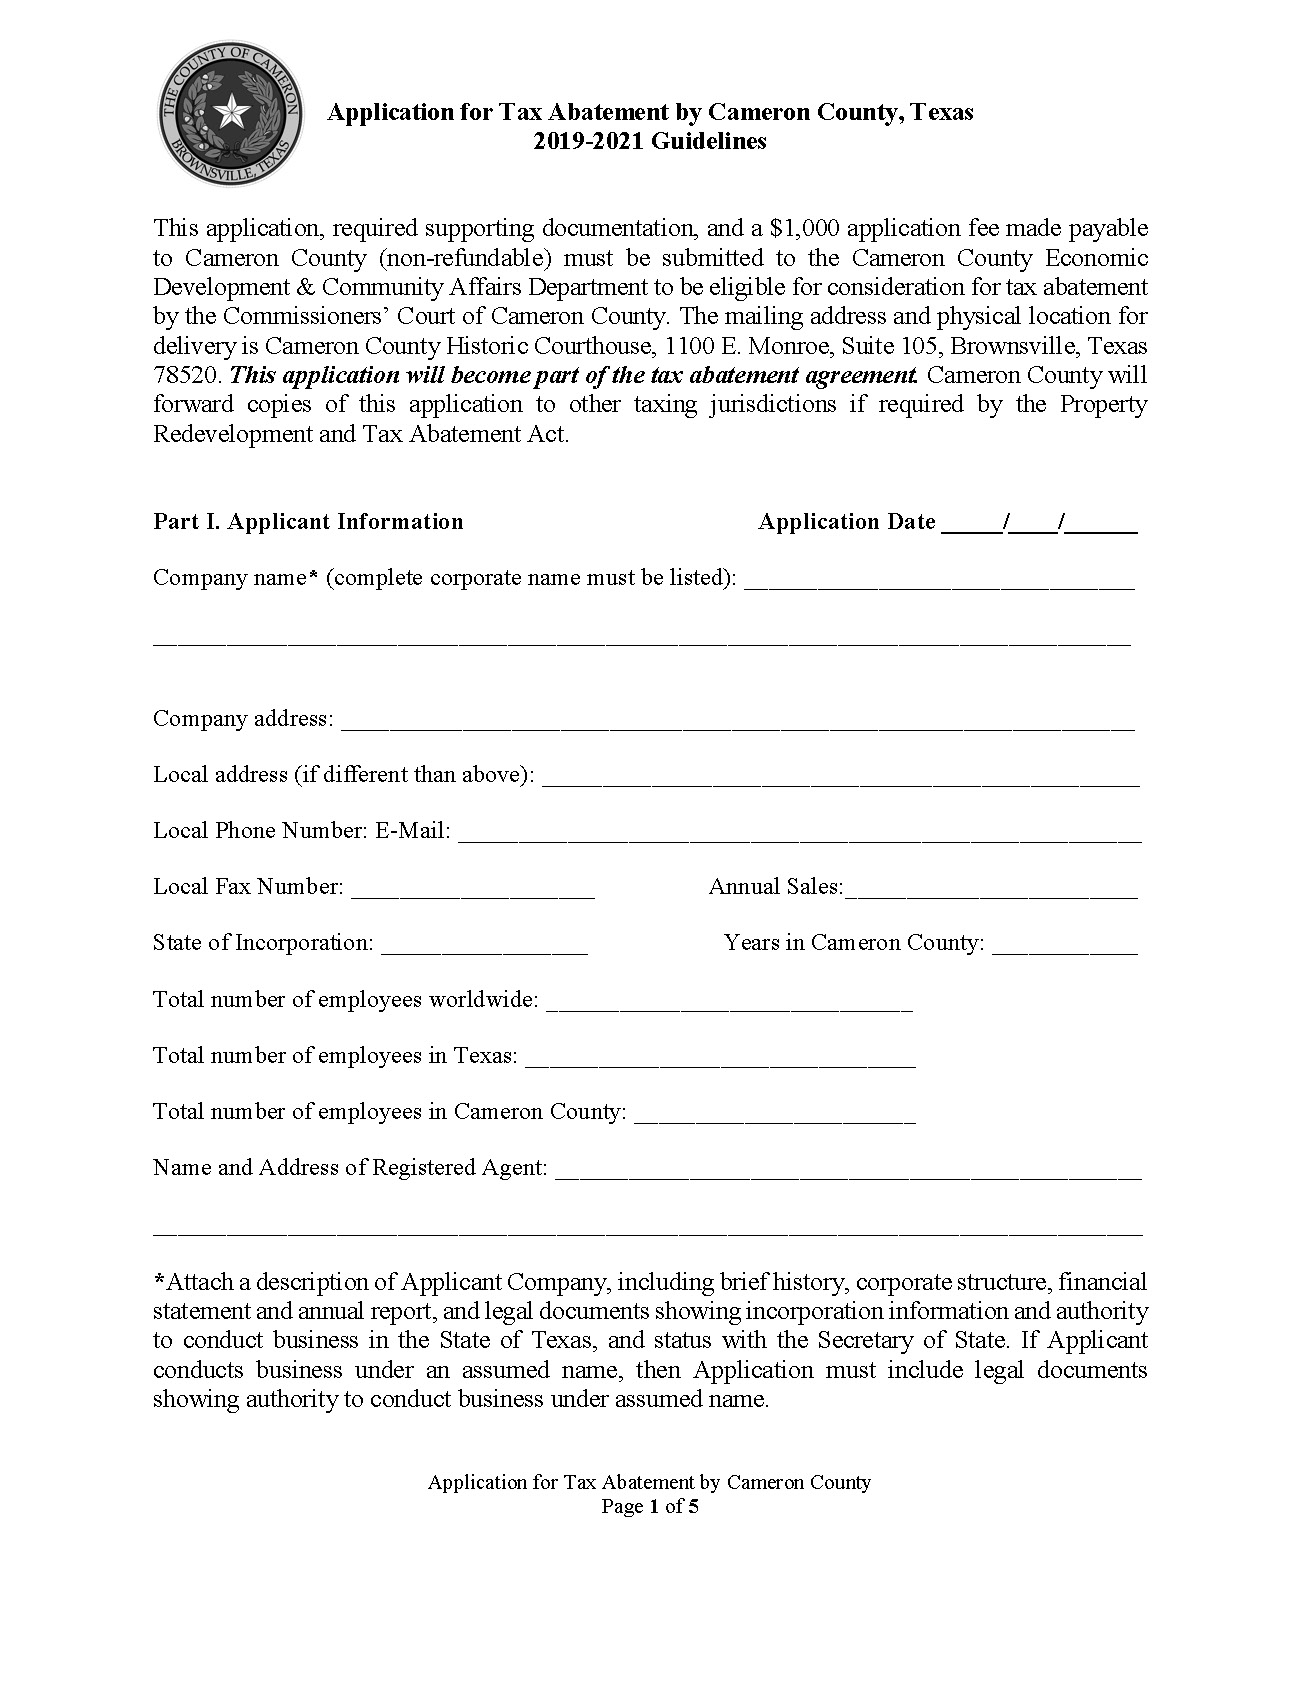 Application For Tax Abatement By Cameron County 2019 2021 Page 1